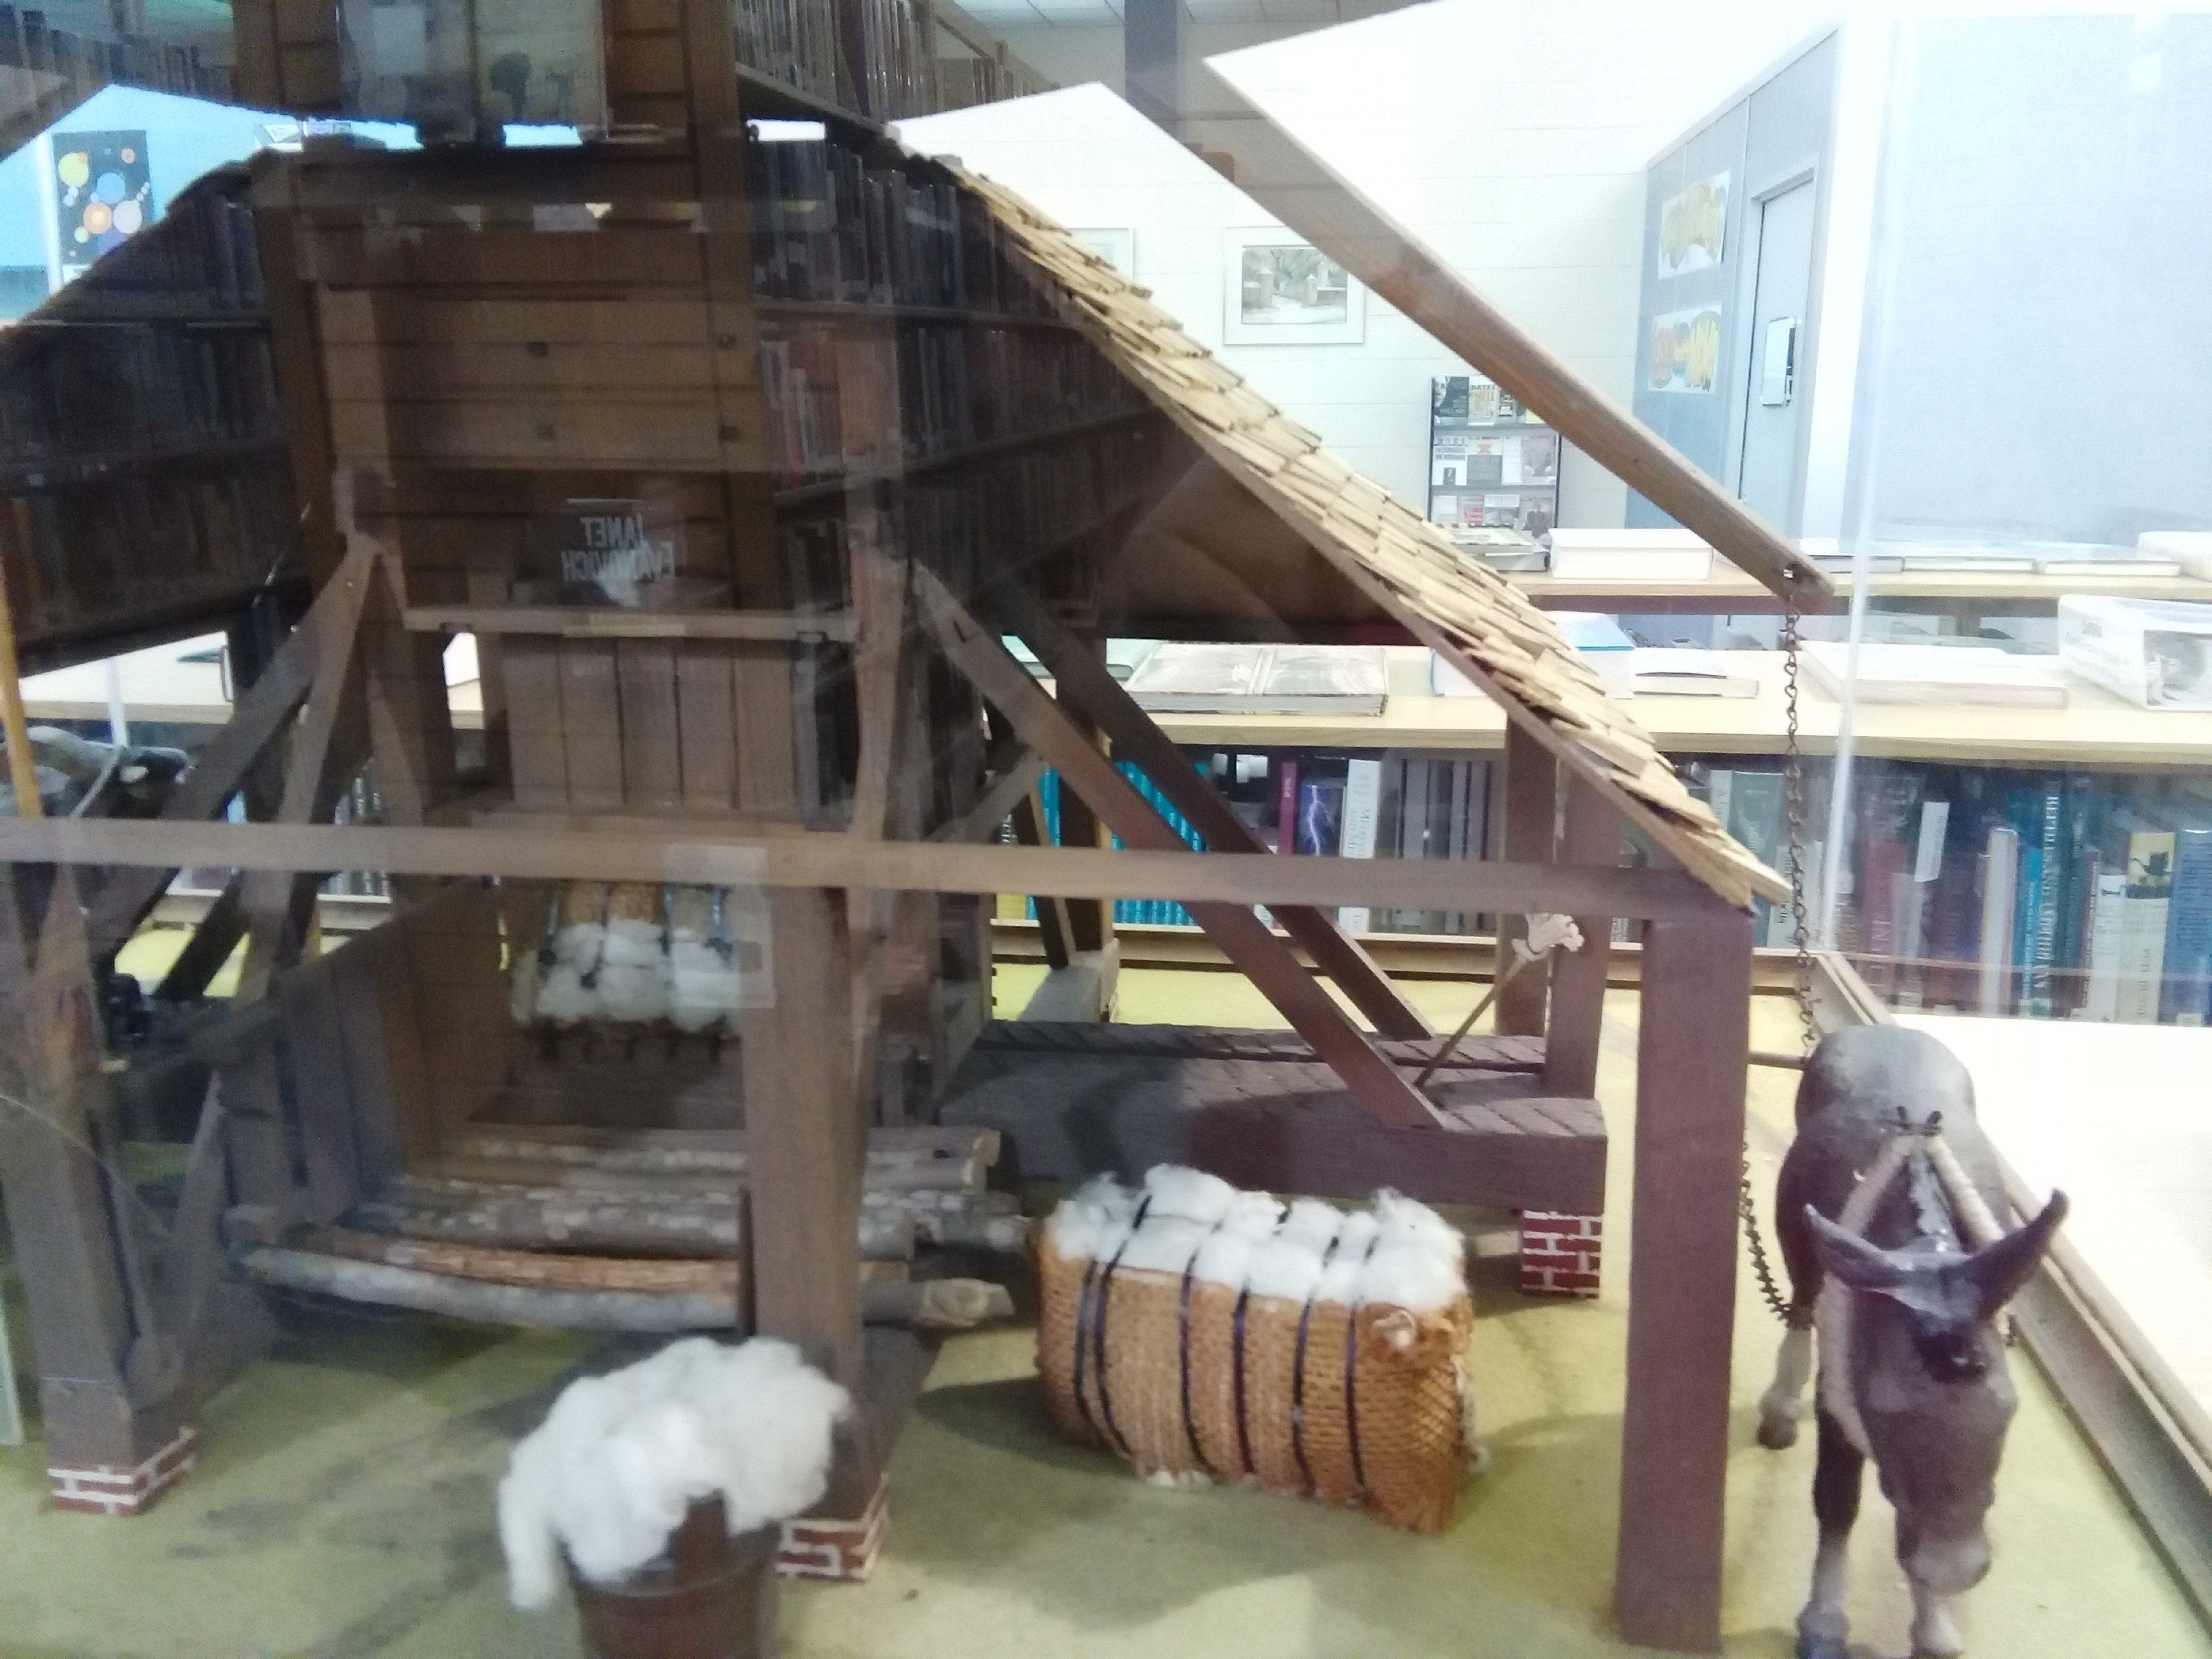 Model of the cotton press located in the Edgecombe Memorial Library that shows how the press operated. Photo by Shondi Showalter